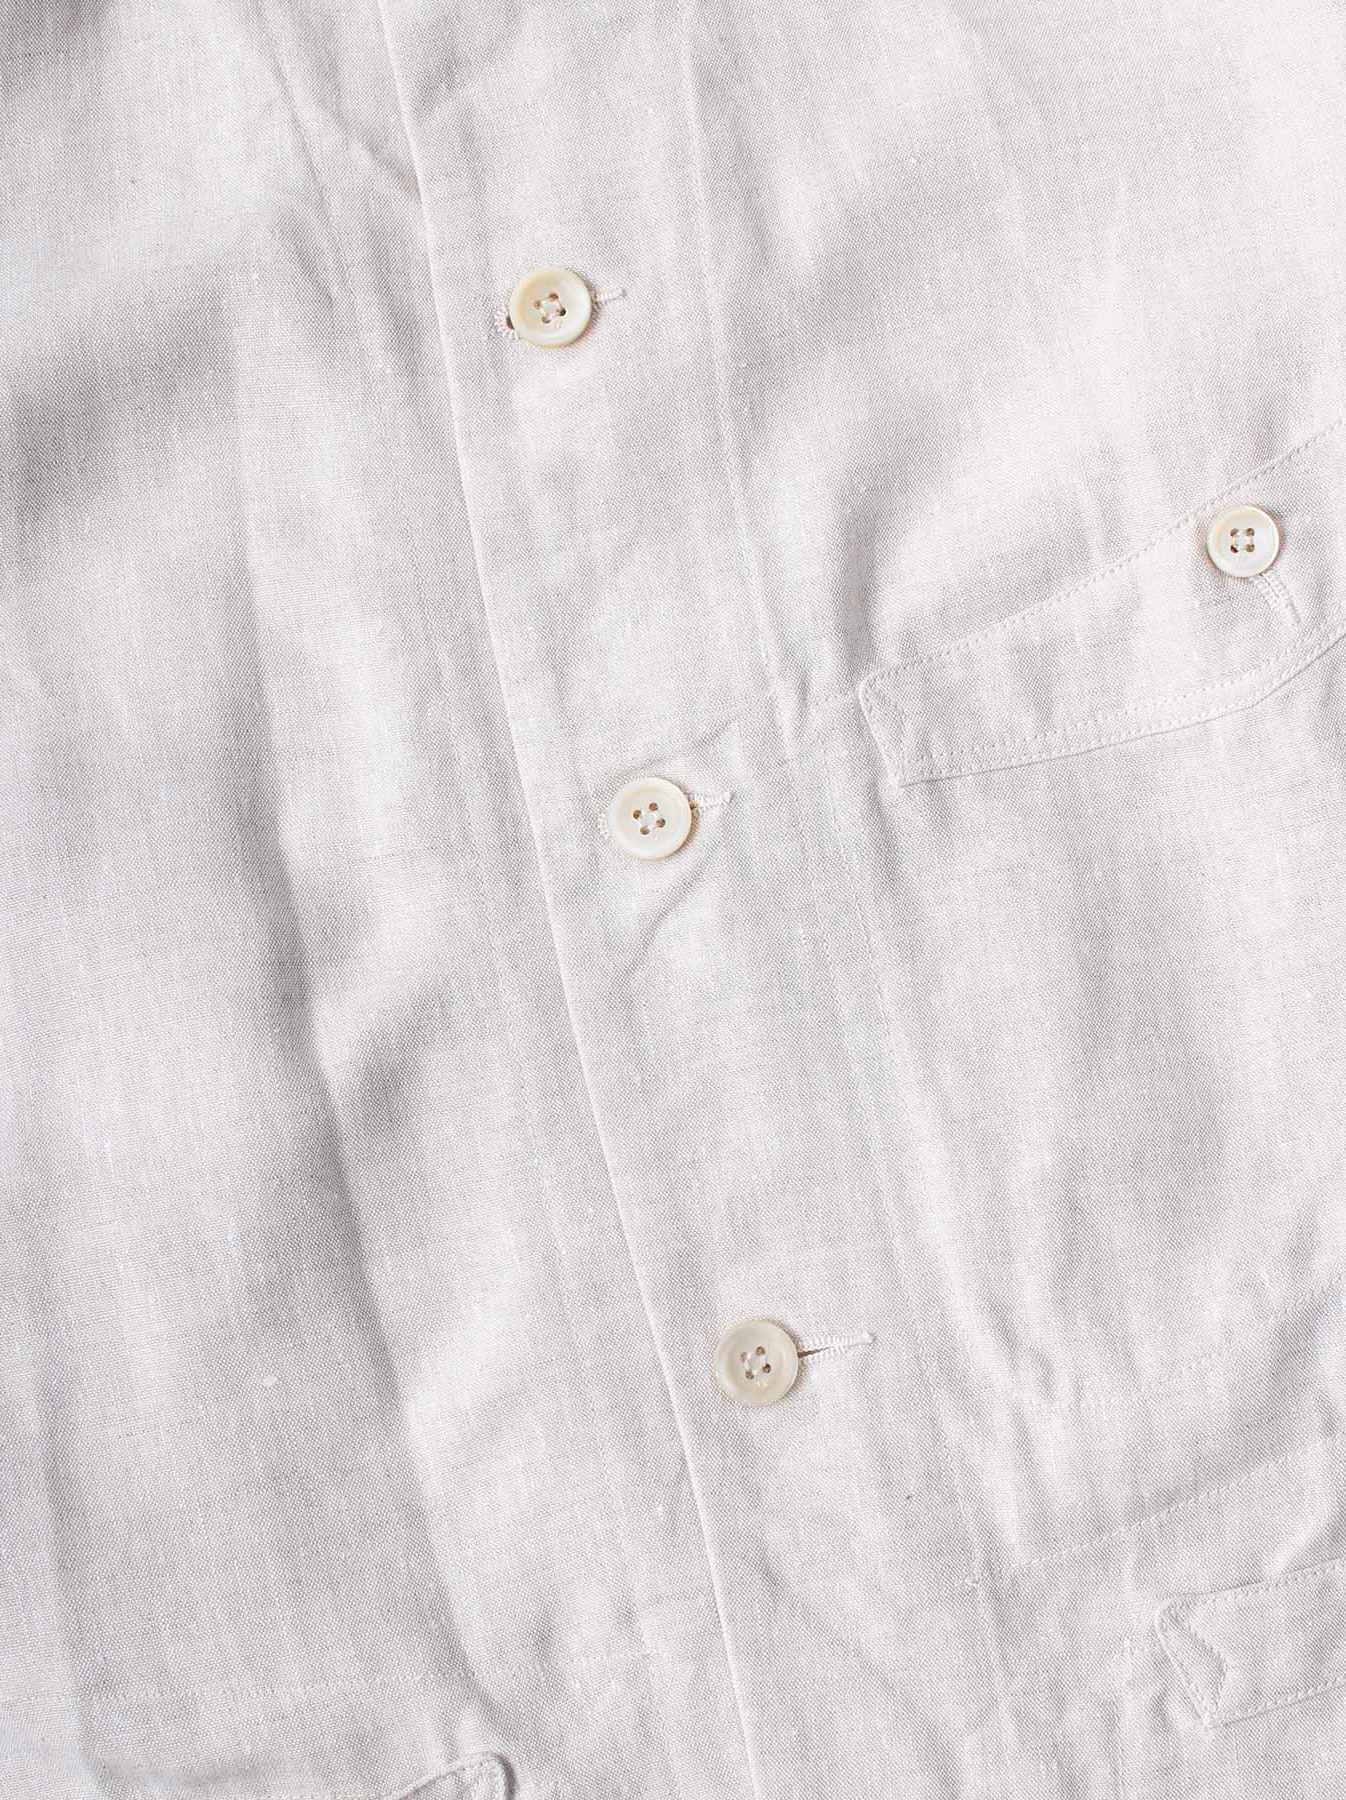 WH Linen Stand Collar Jacket-7